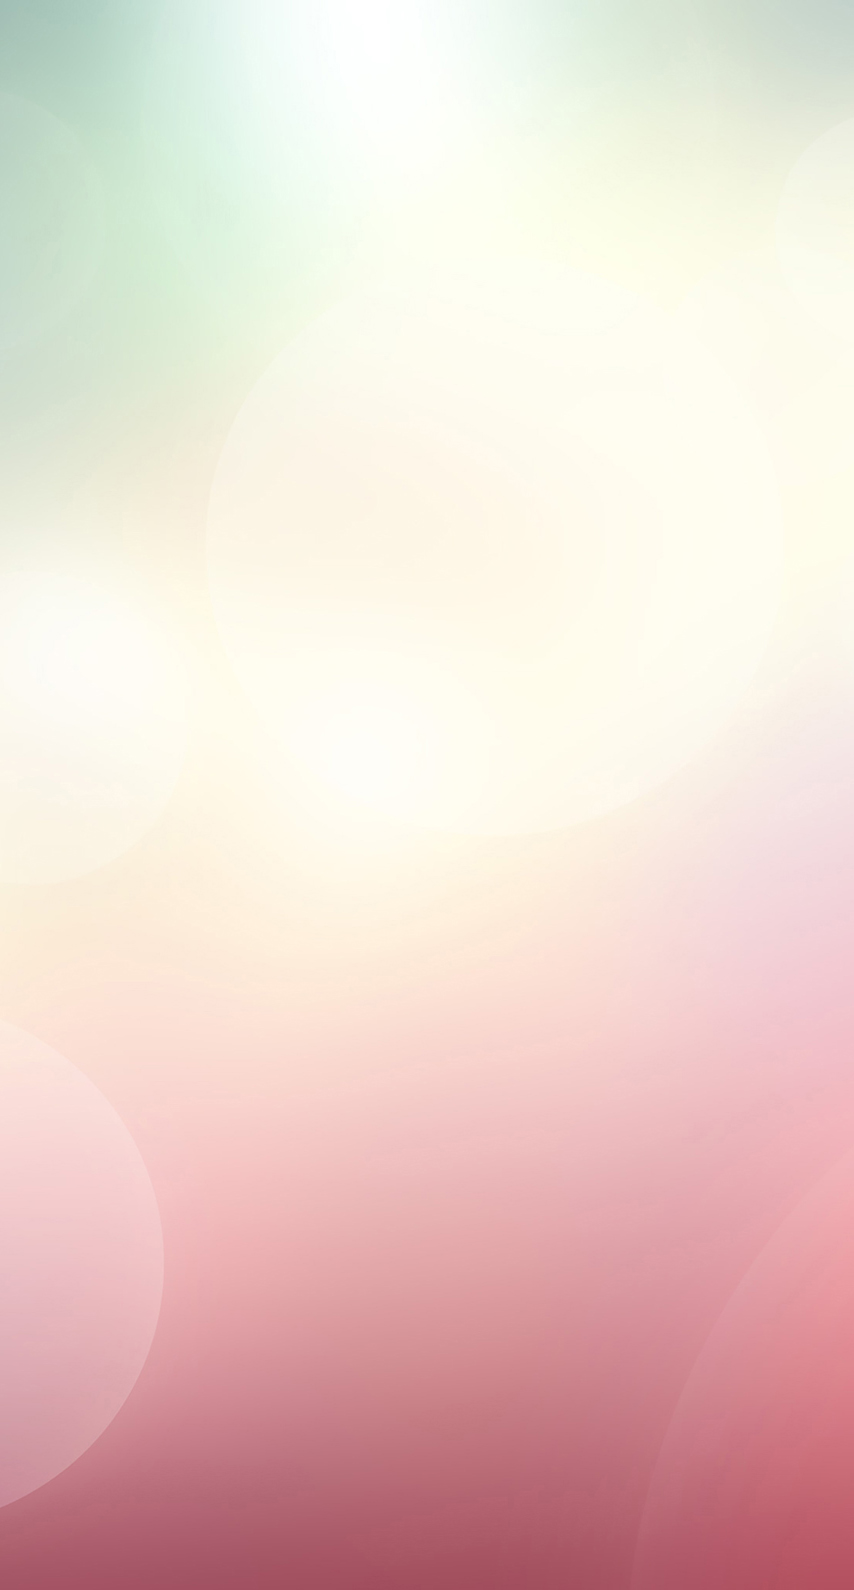 texture, abstract, pattern, light, bright, art, graphic, sparkle, design, background, insubstantial